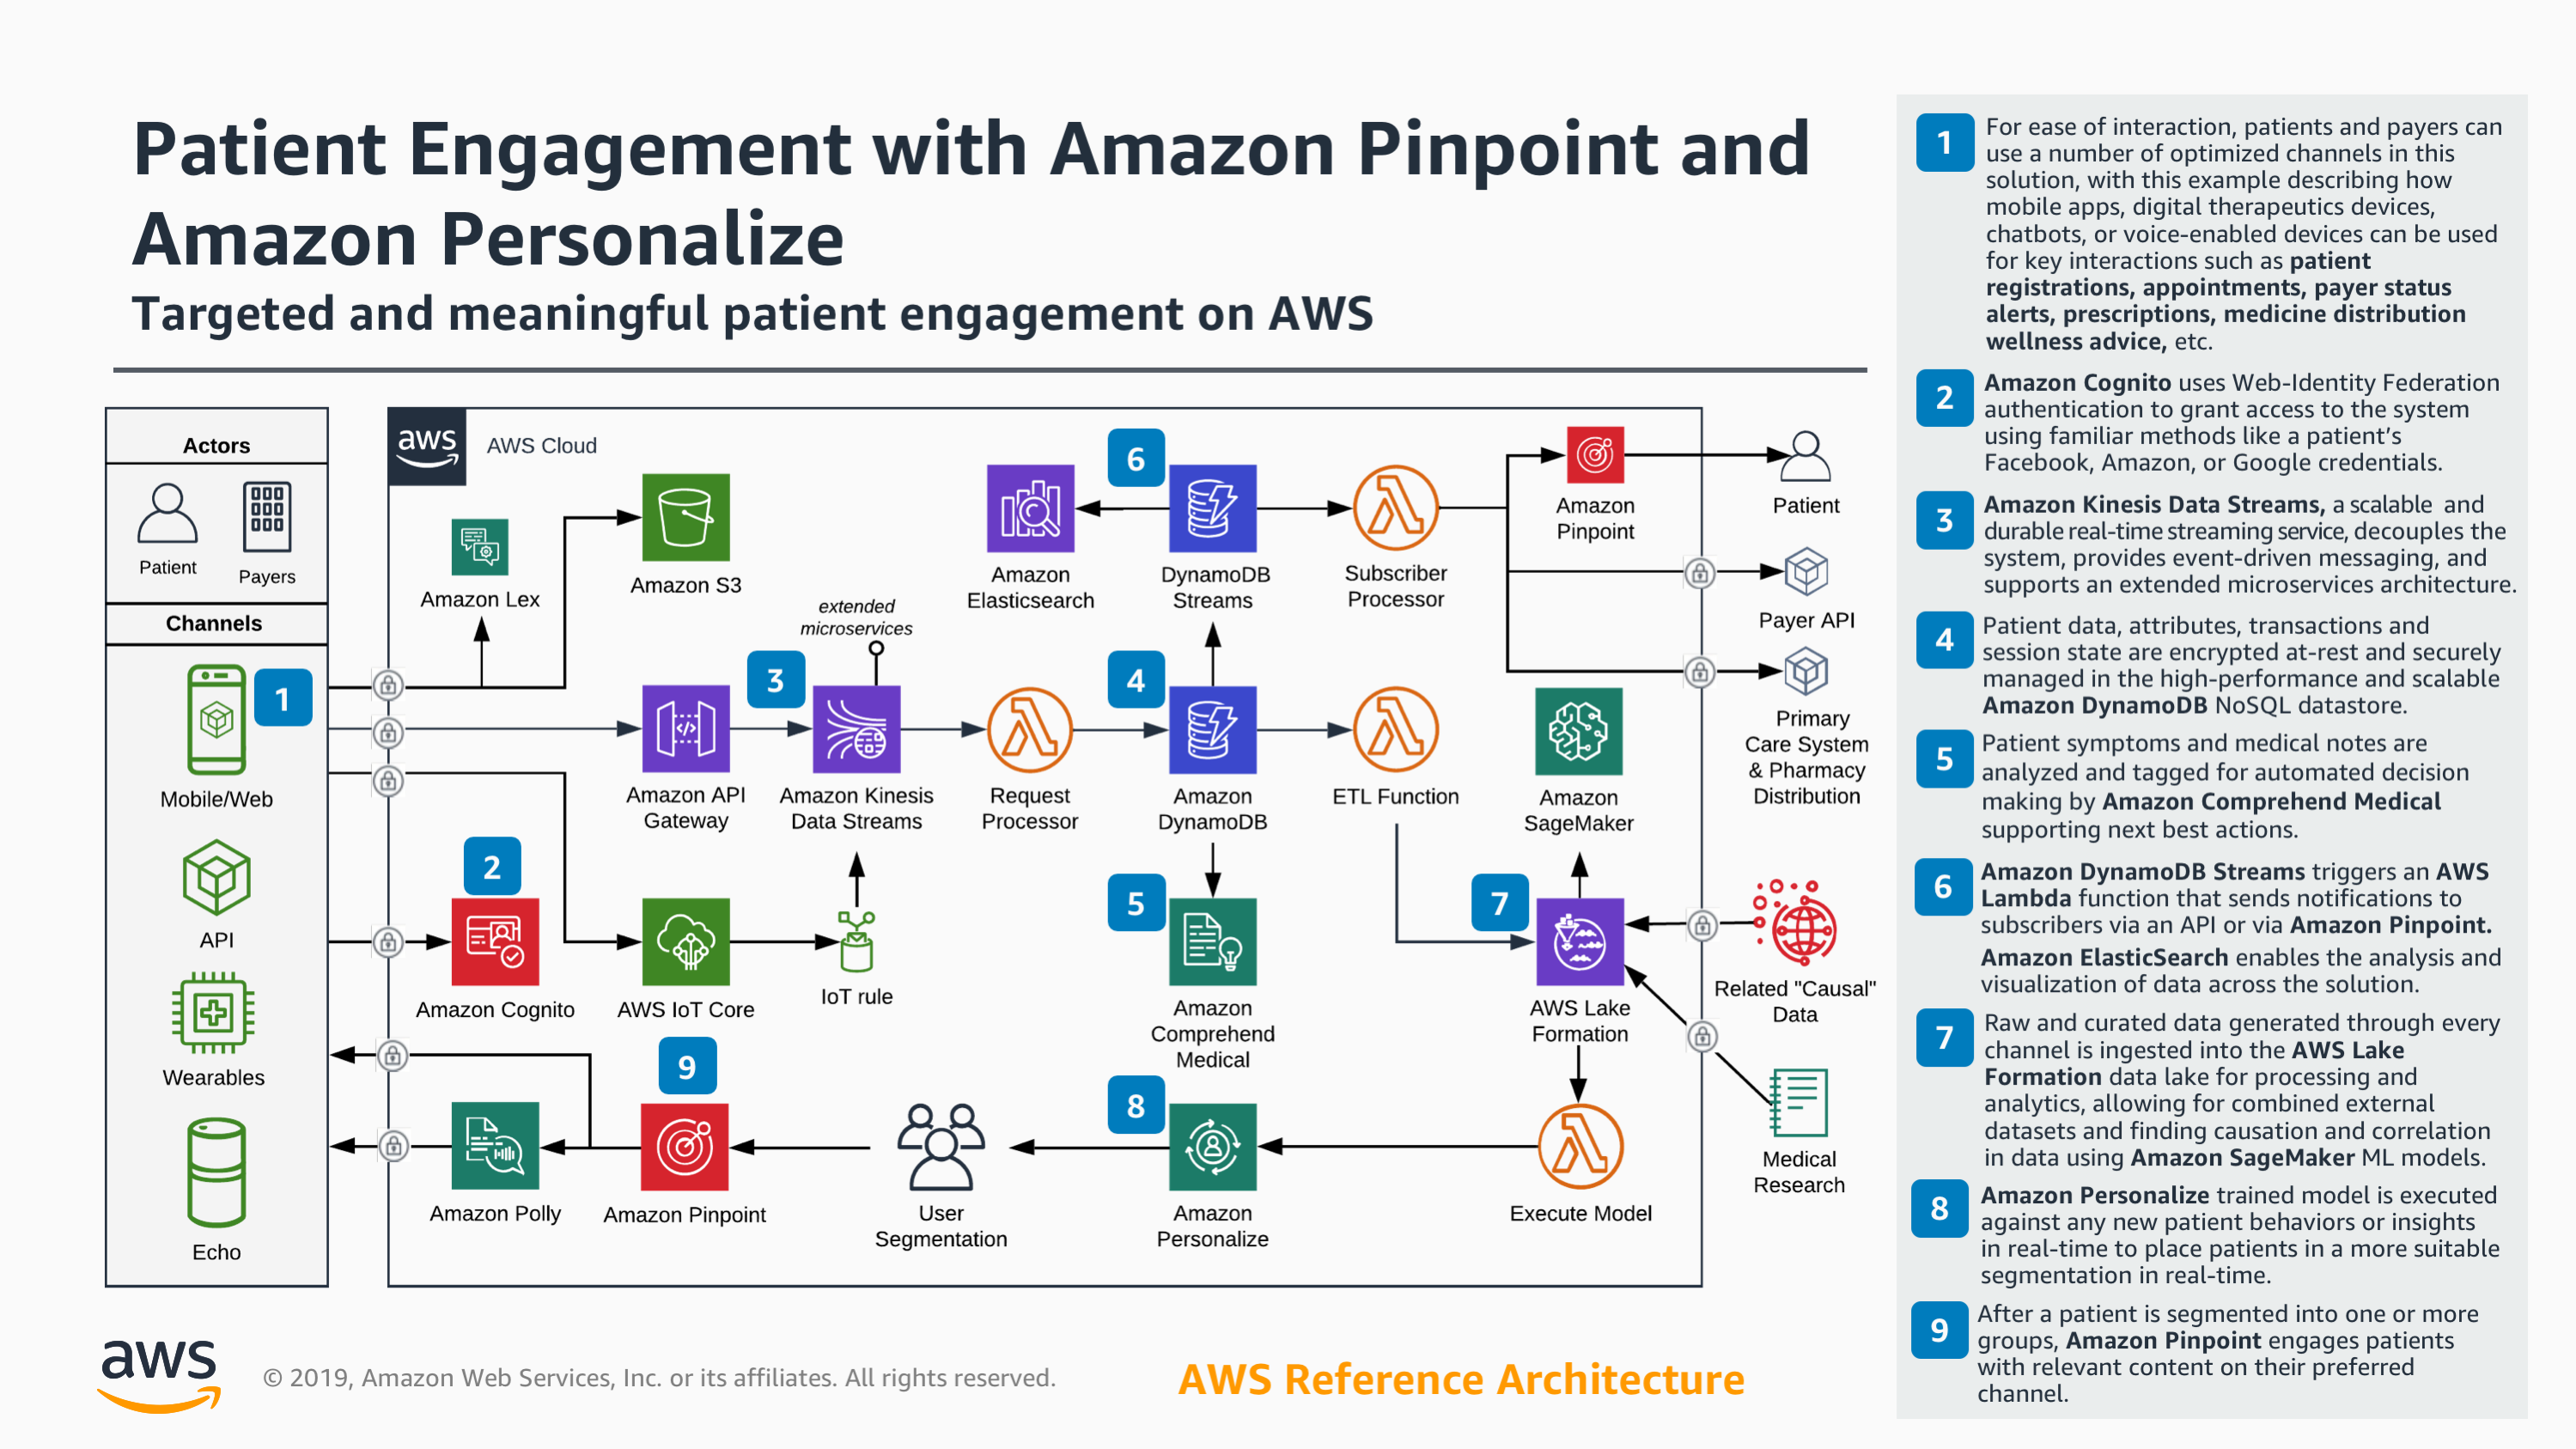 aws-reference-architecture-patient-engagement